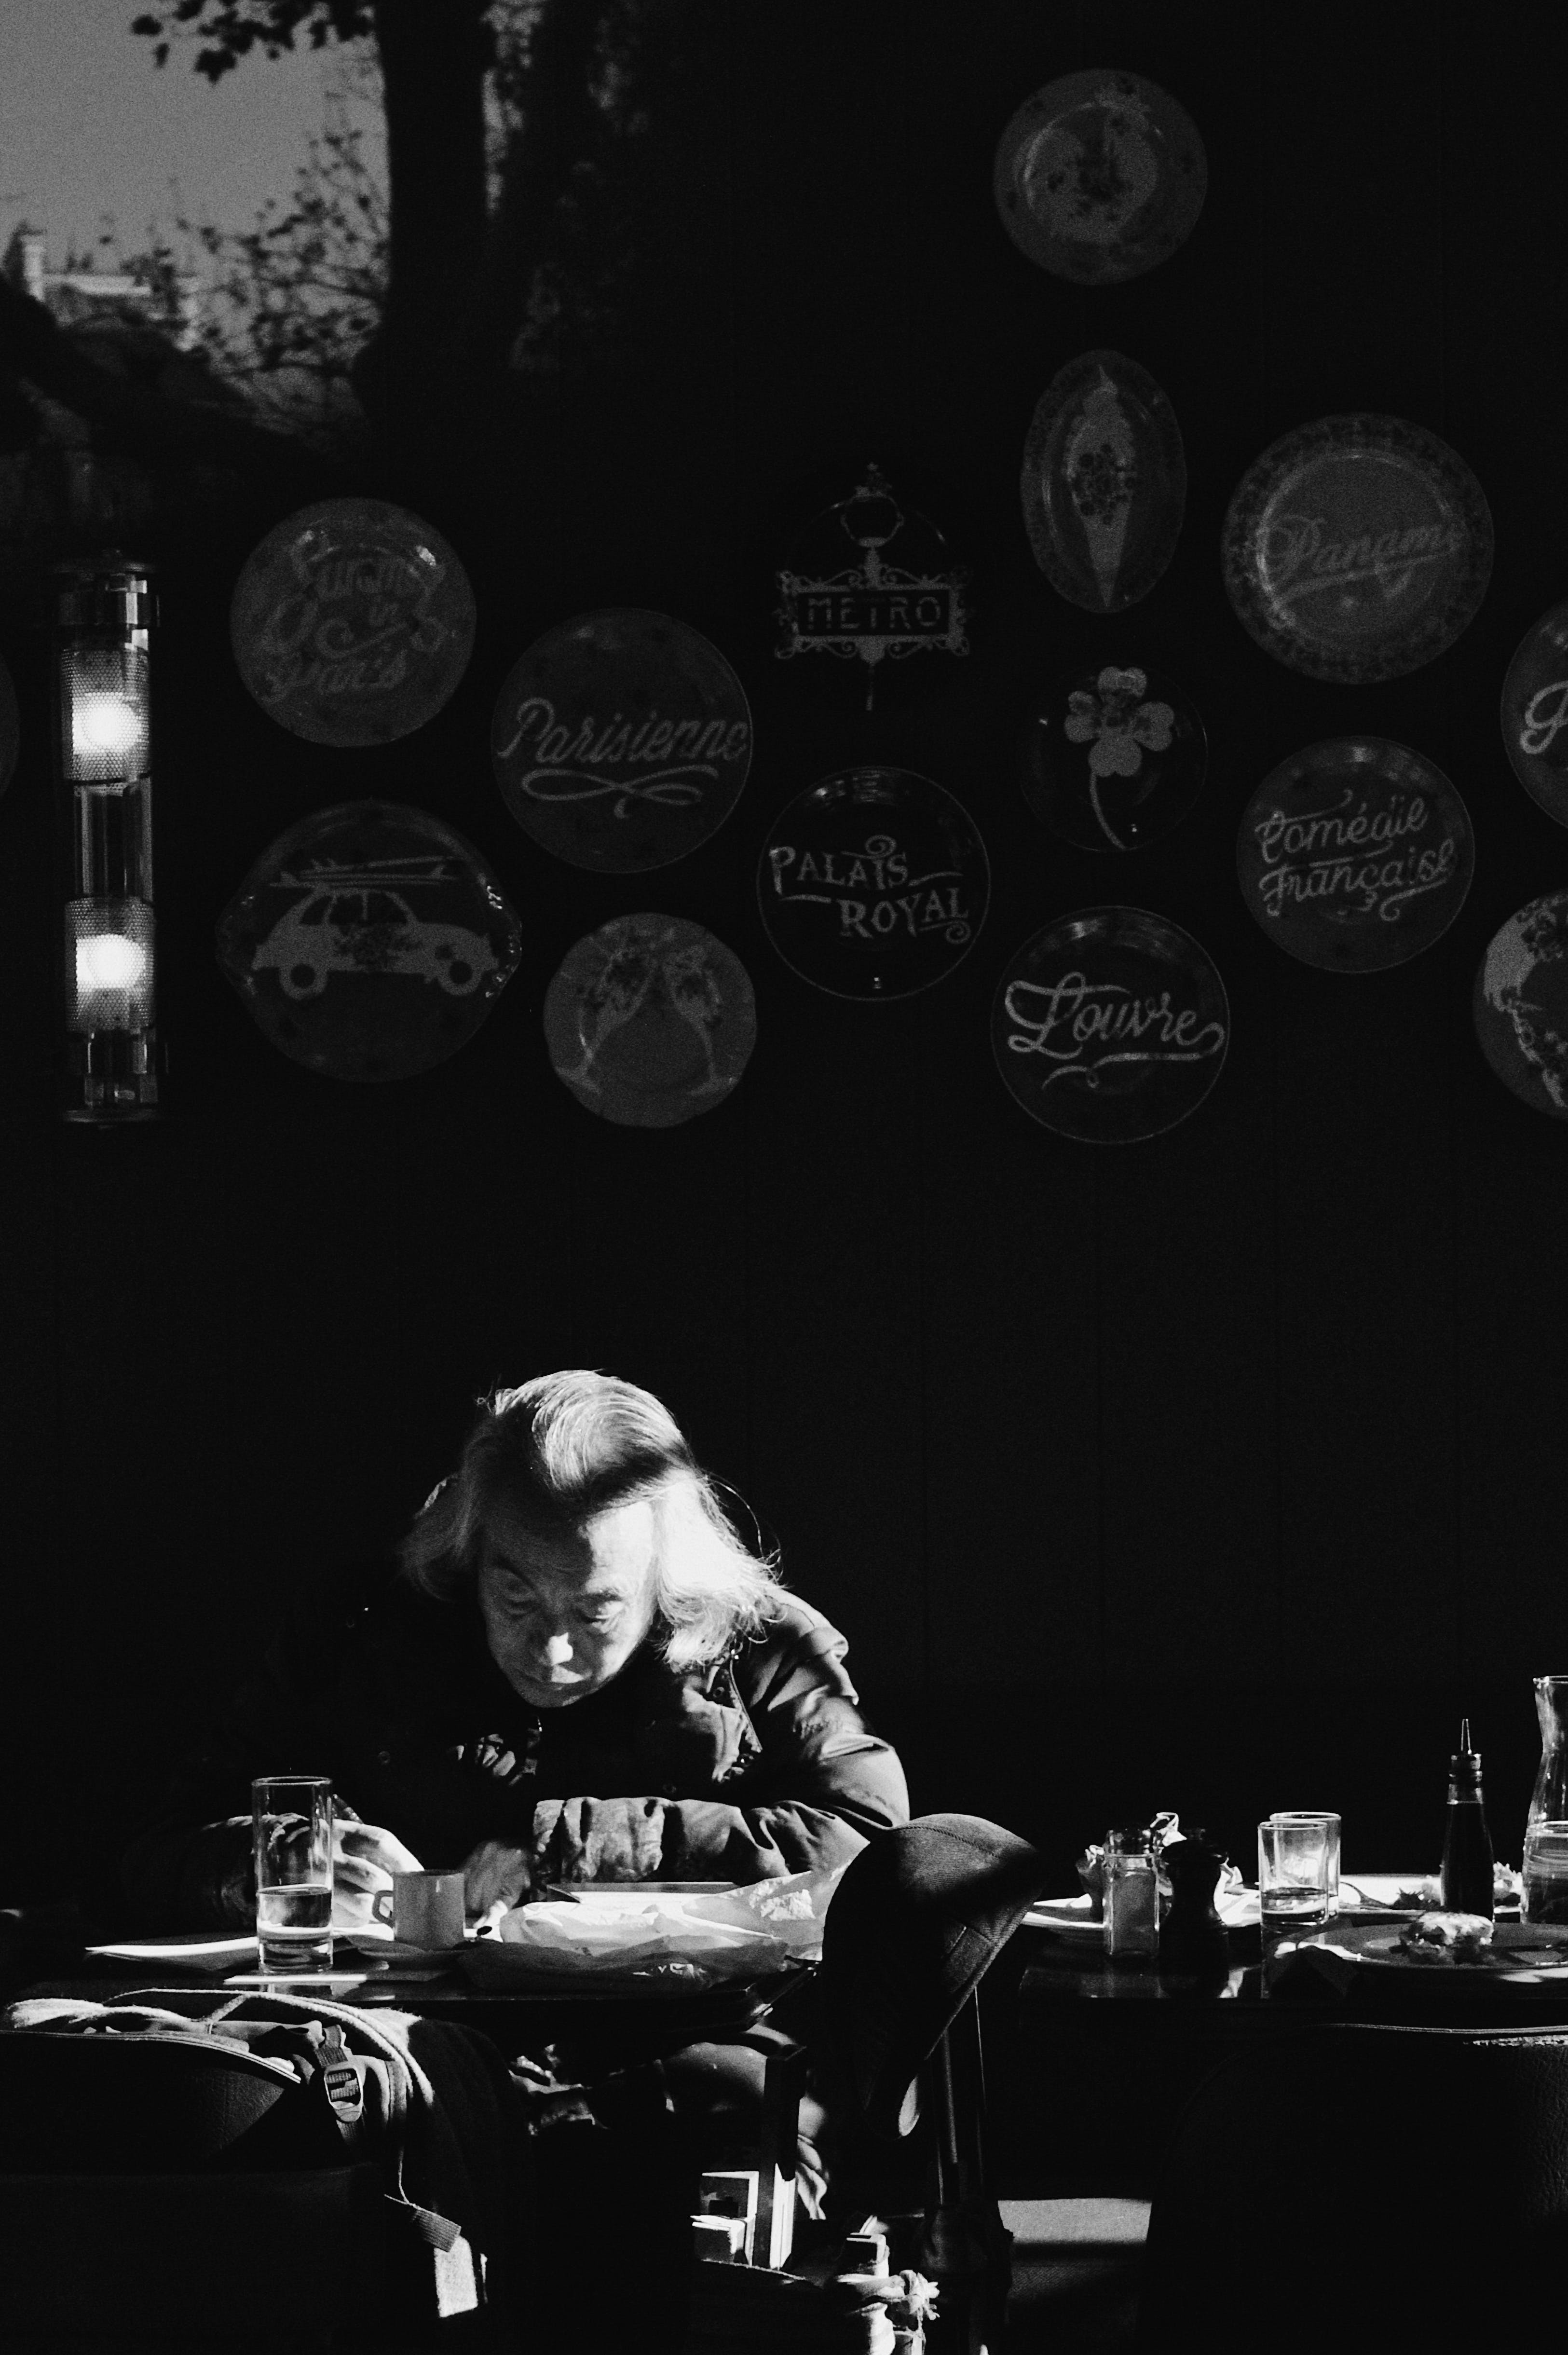 Man Writing on Desk Grayscale Photography